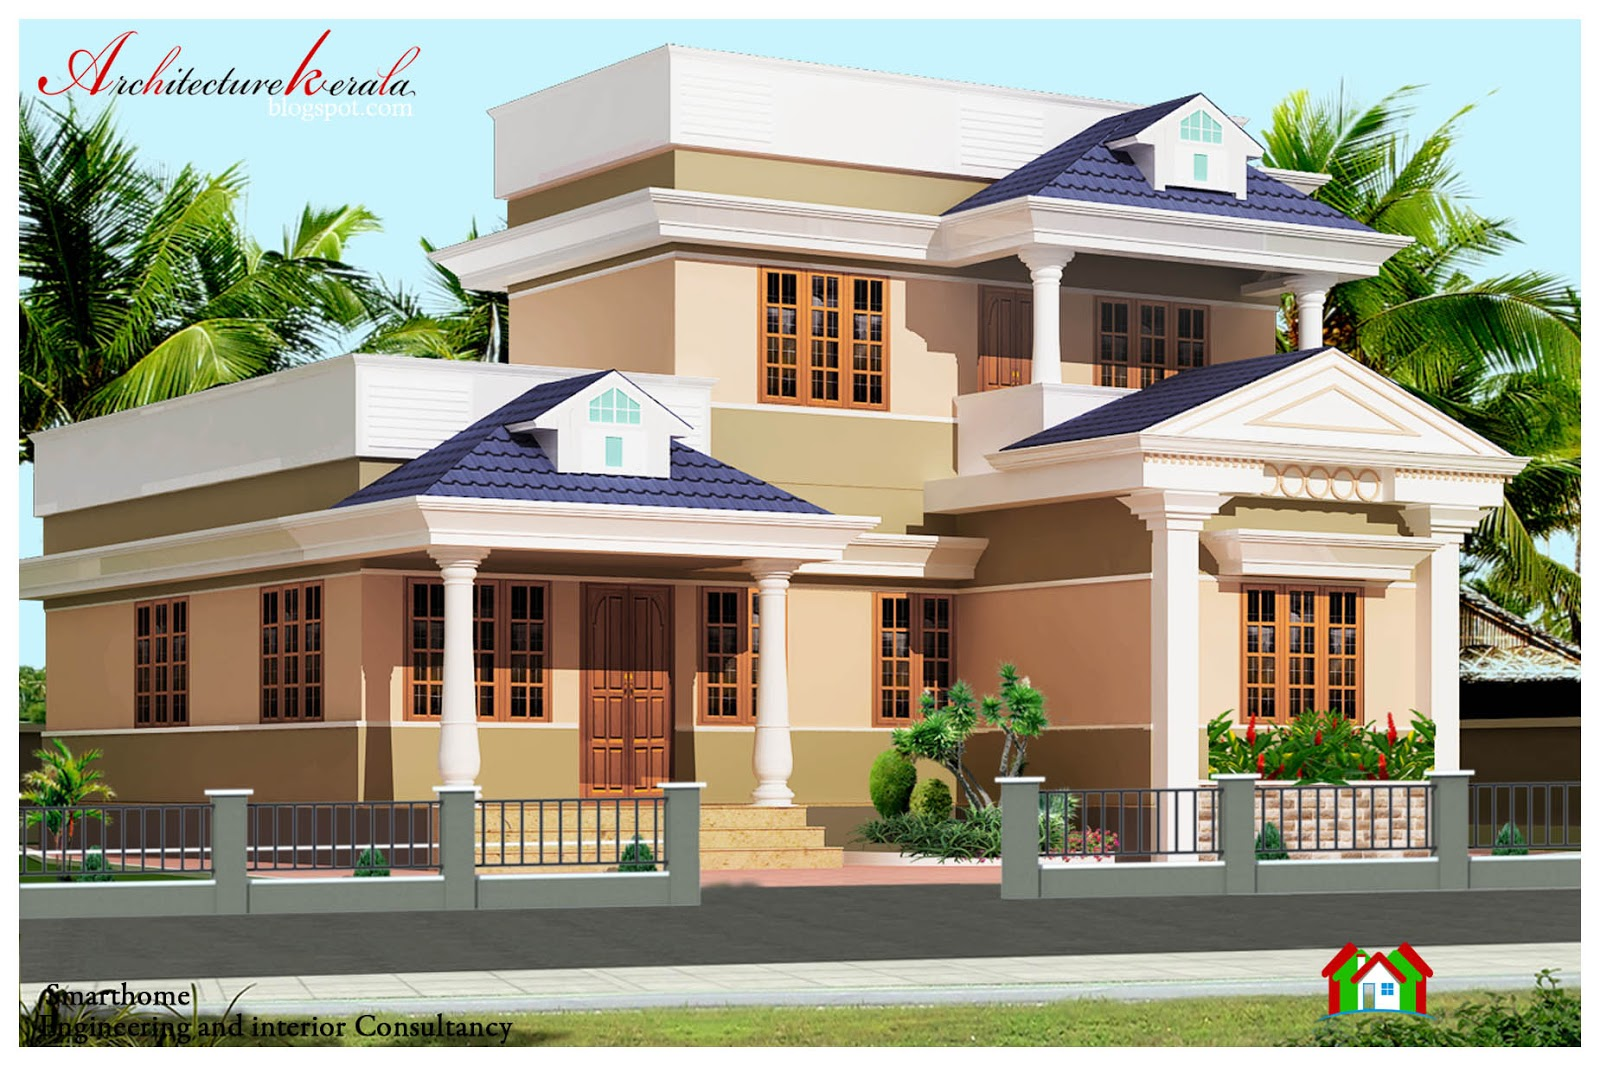 Architecture kerala 1000 sq ft kerala style house plan for New model veedu photos